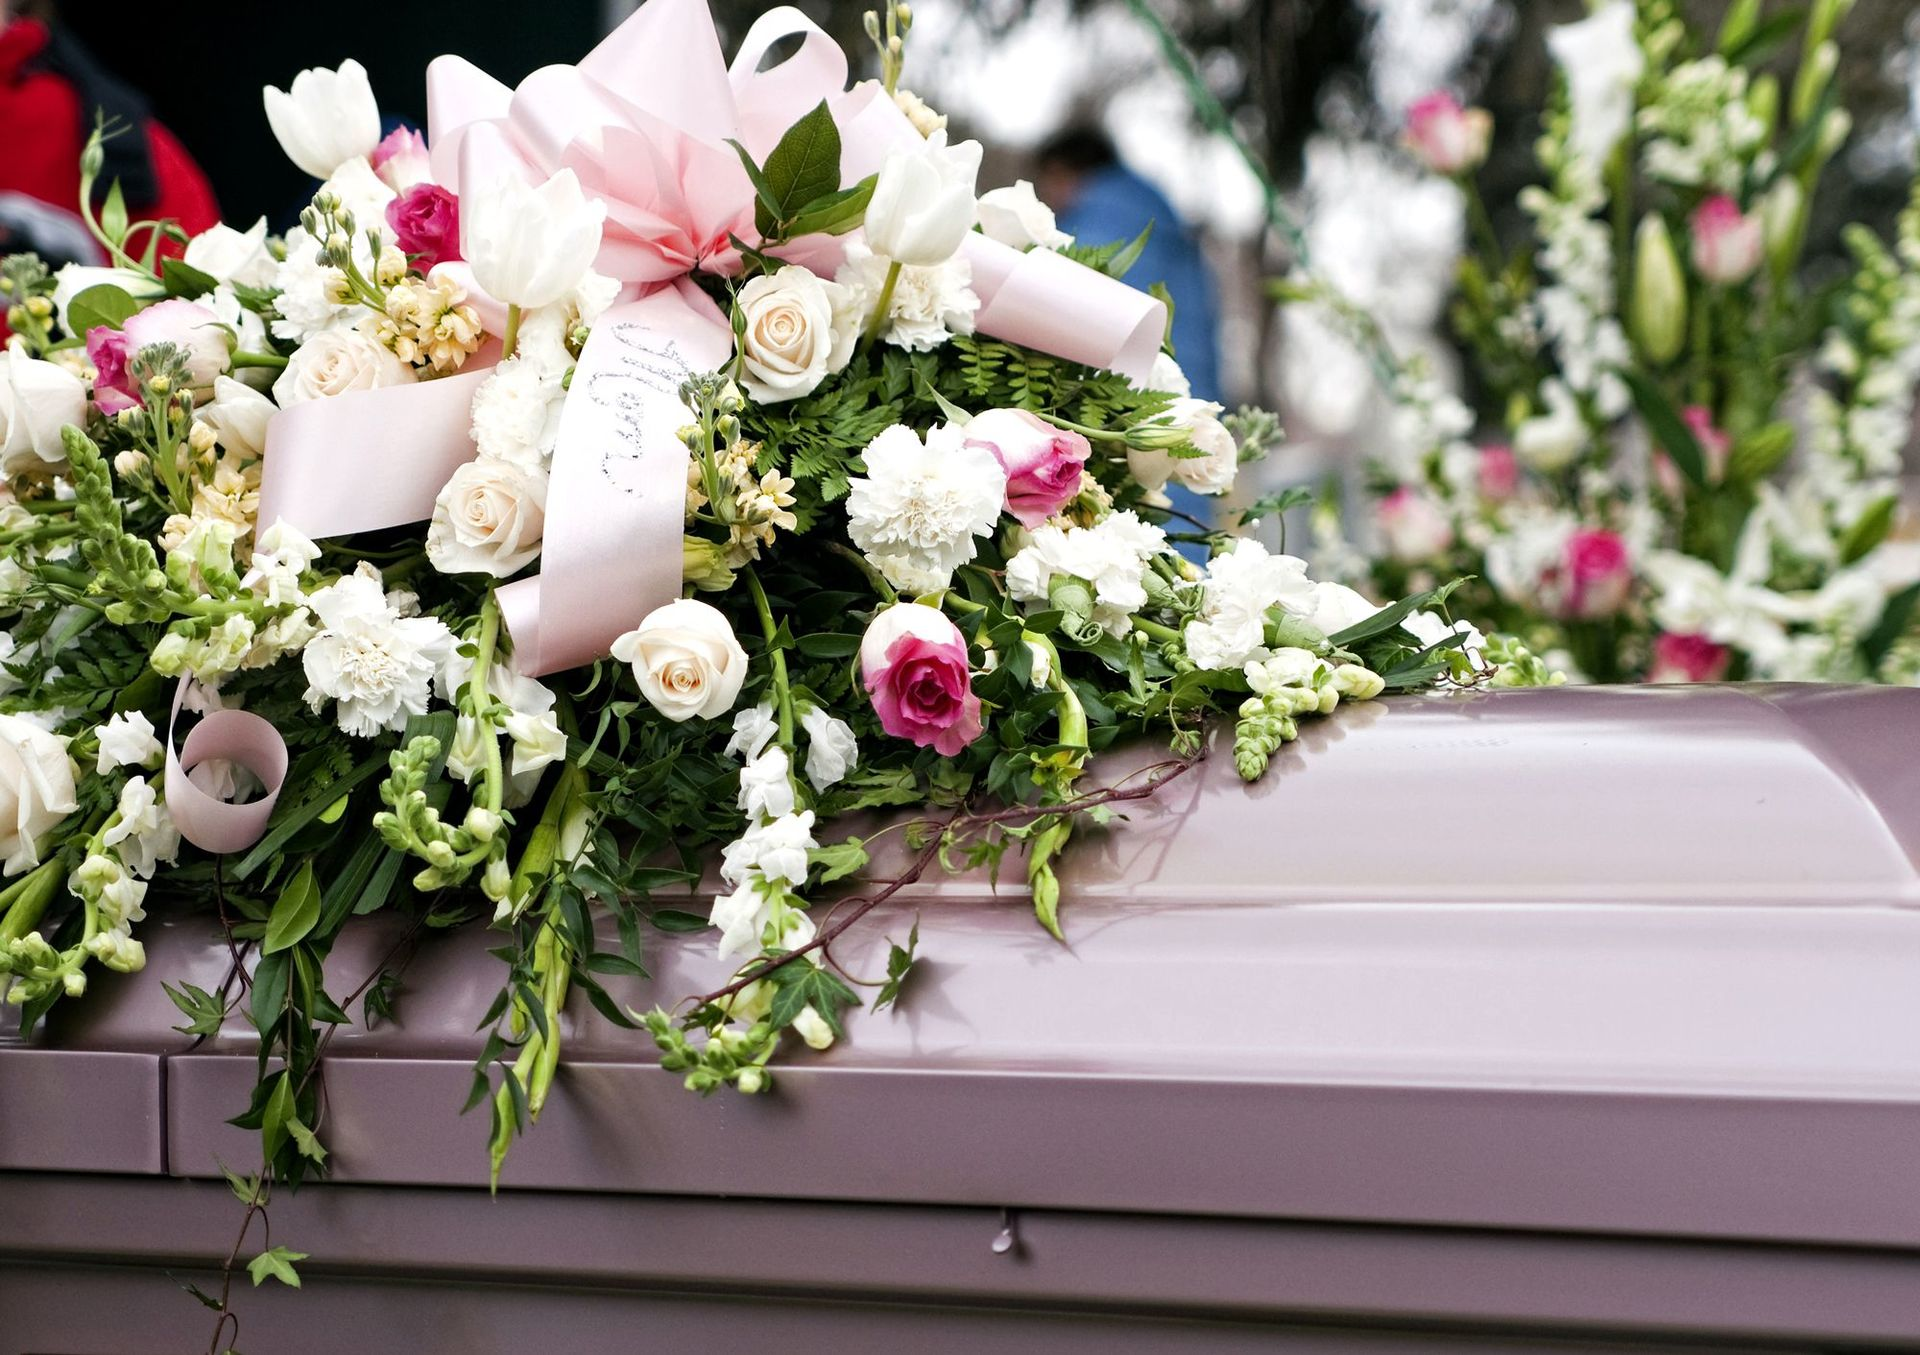 What do families do with flowers after the funeral izmirmasajfo